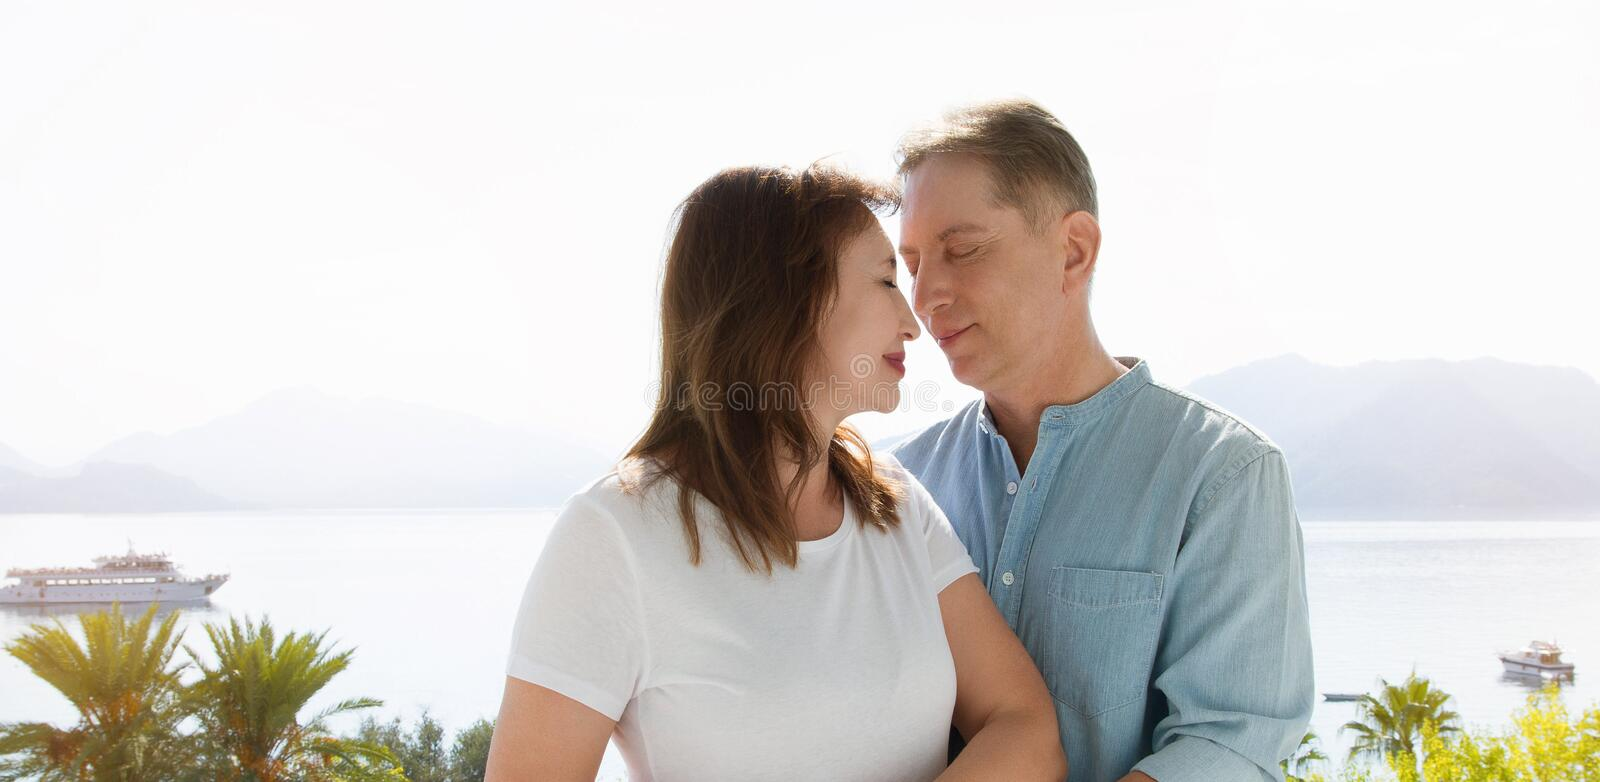 Summer family vacation. Happy middle aged couple having fun on travel holidays weekend. Sea and beach background. Copy space stock images